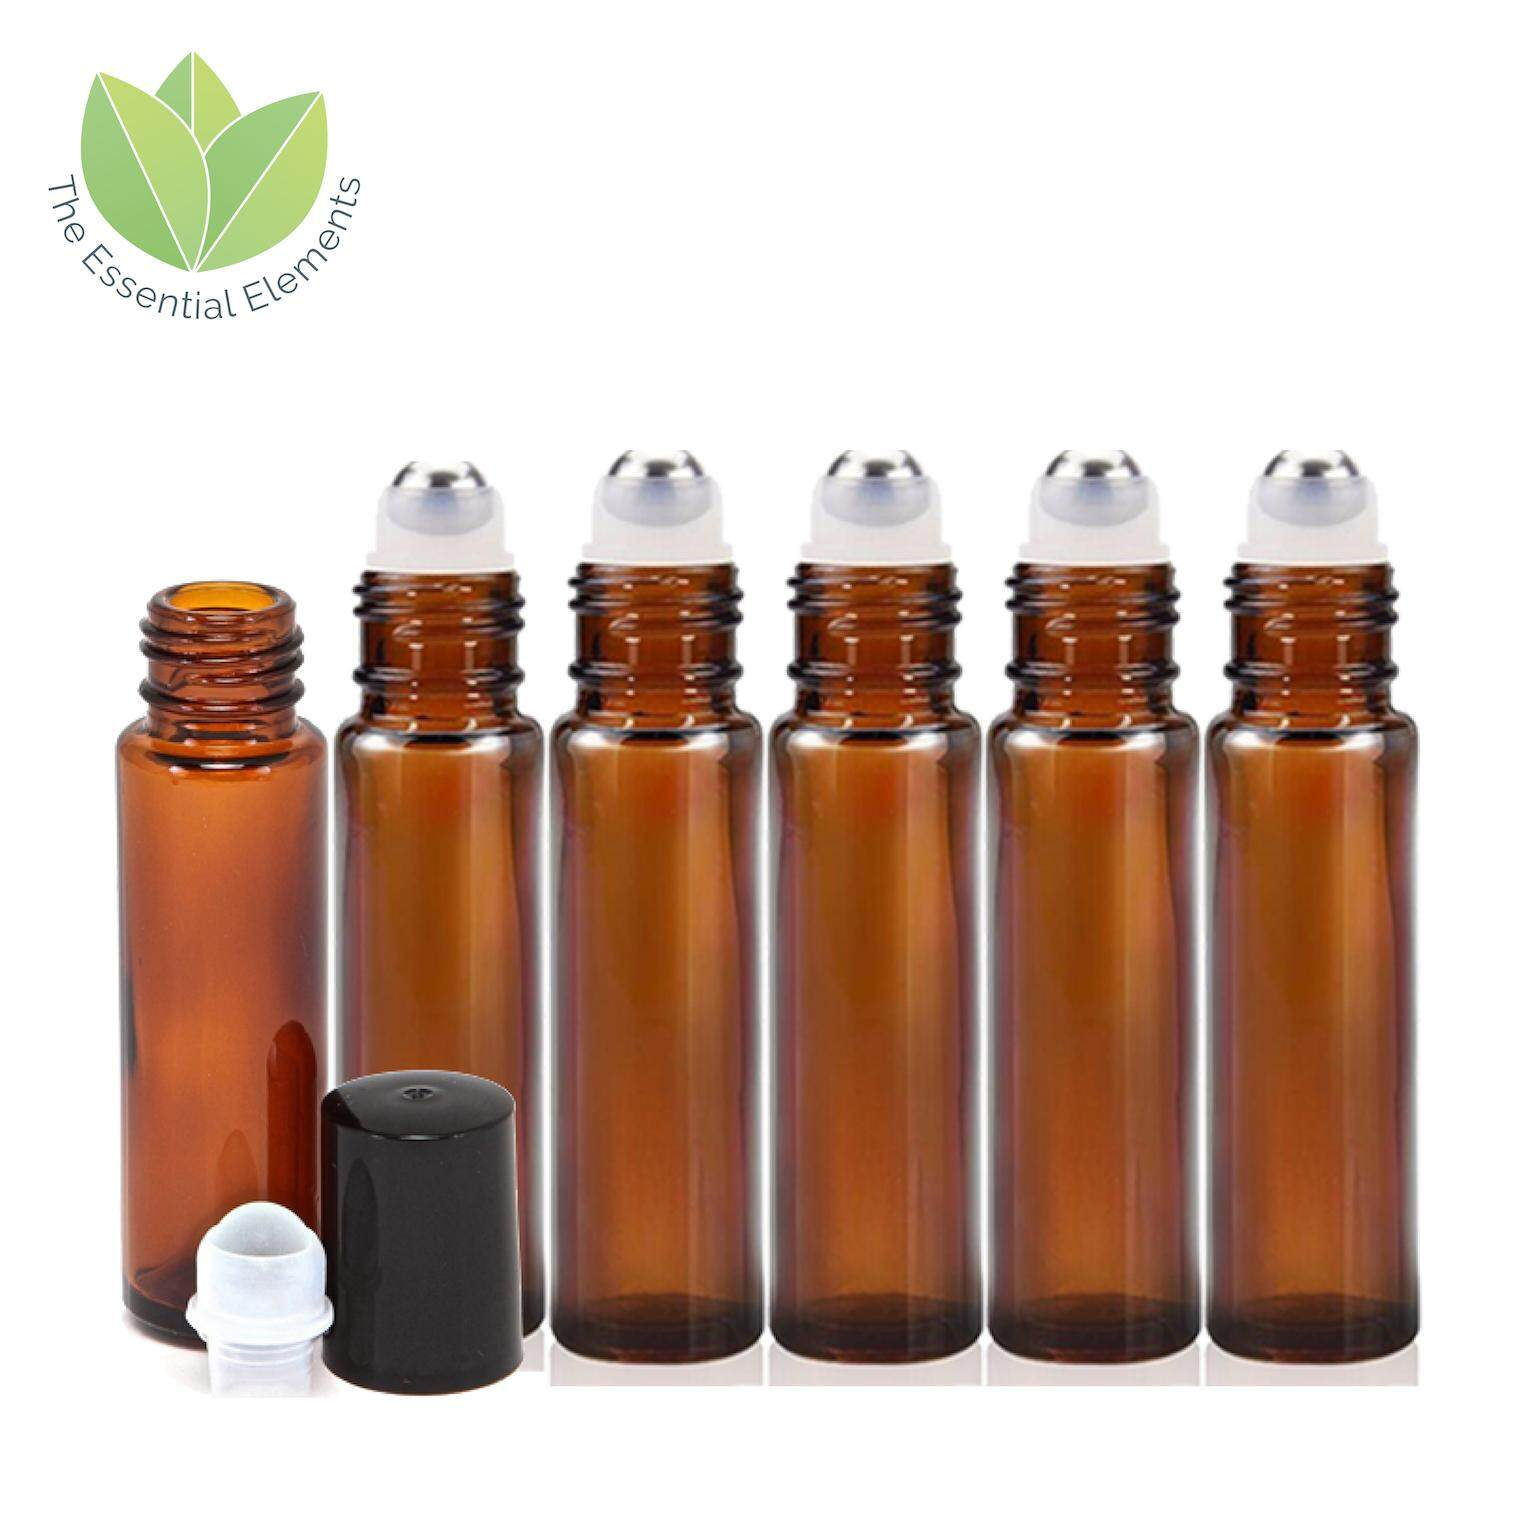 644fa05d7590 The Essential Elements 6pcs 10ml [THICK] Amber Glass Bottle for Essential  Oil Liquid with Metal Roller Ball